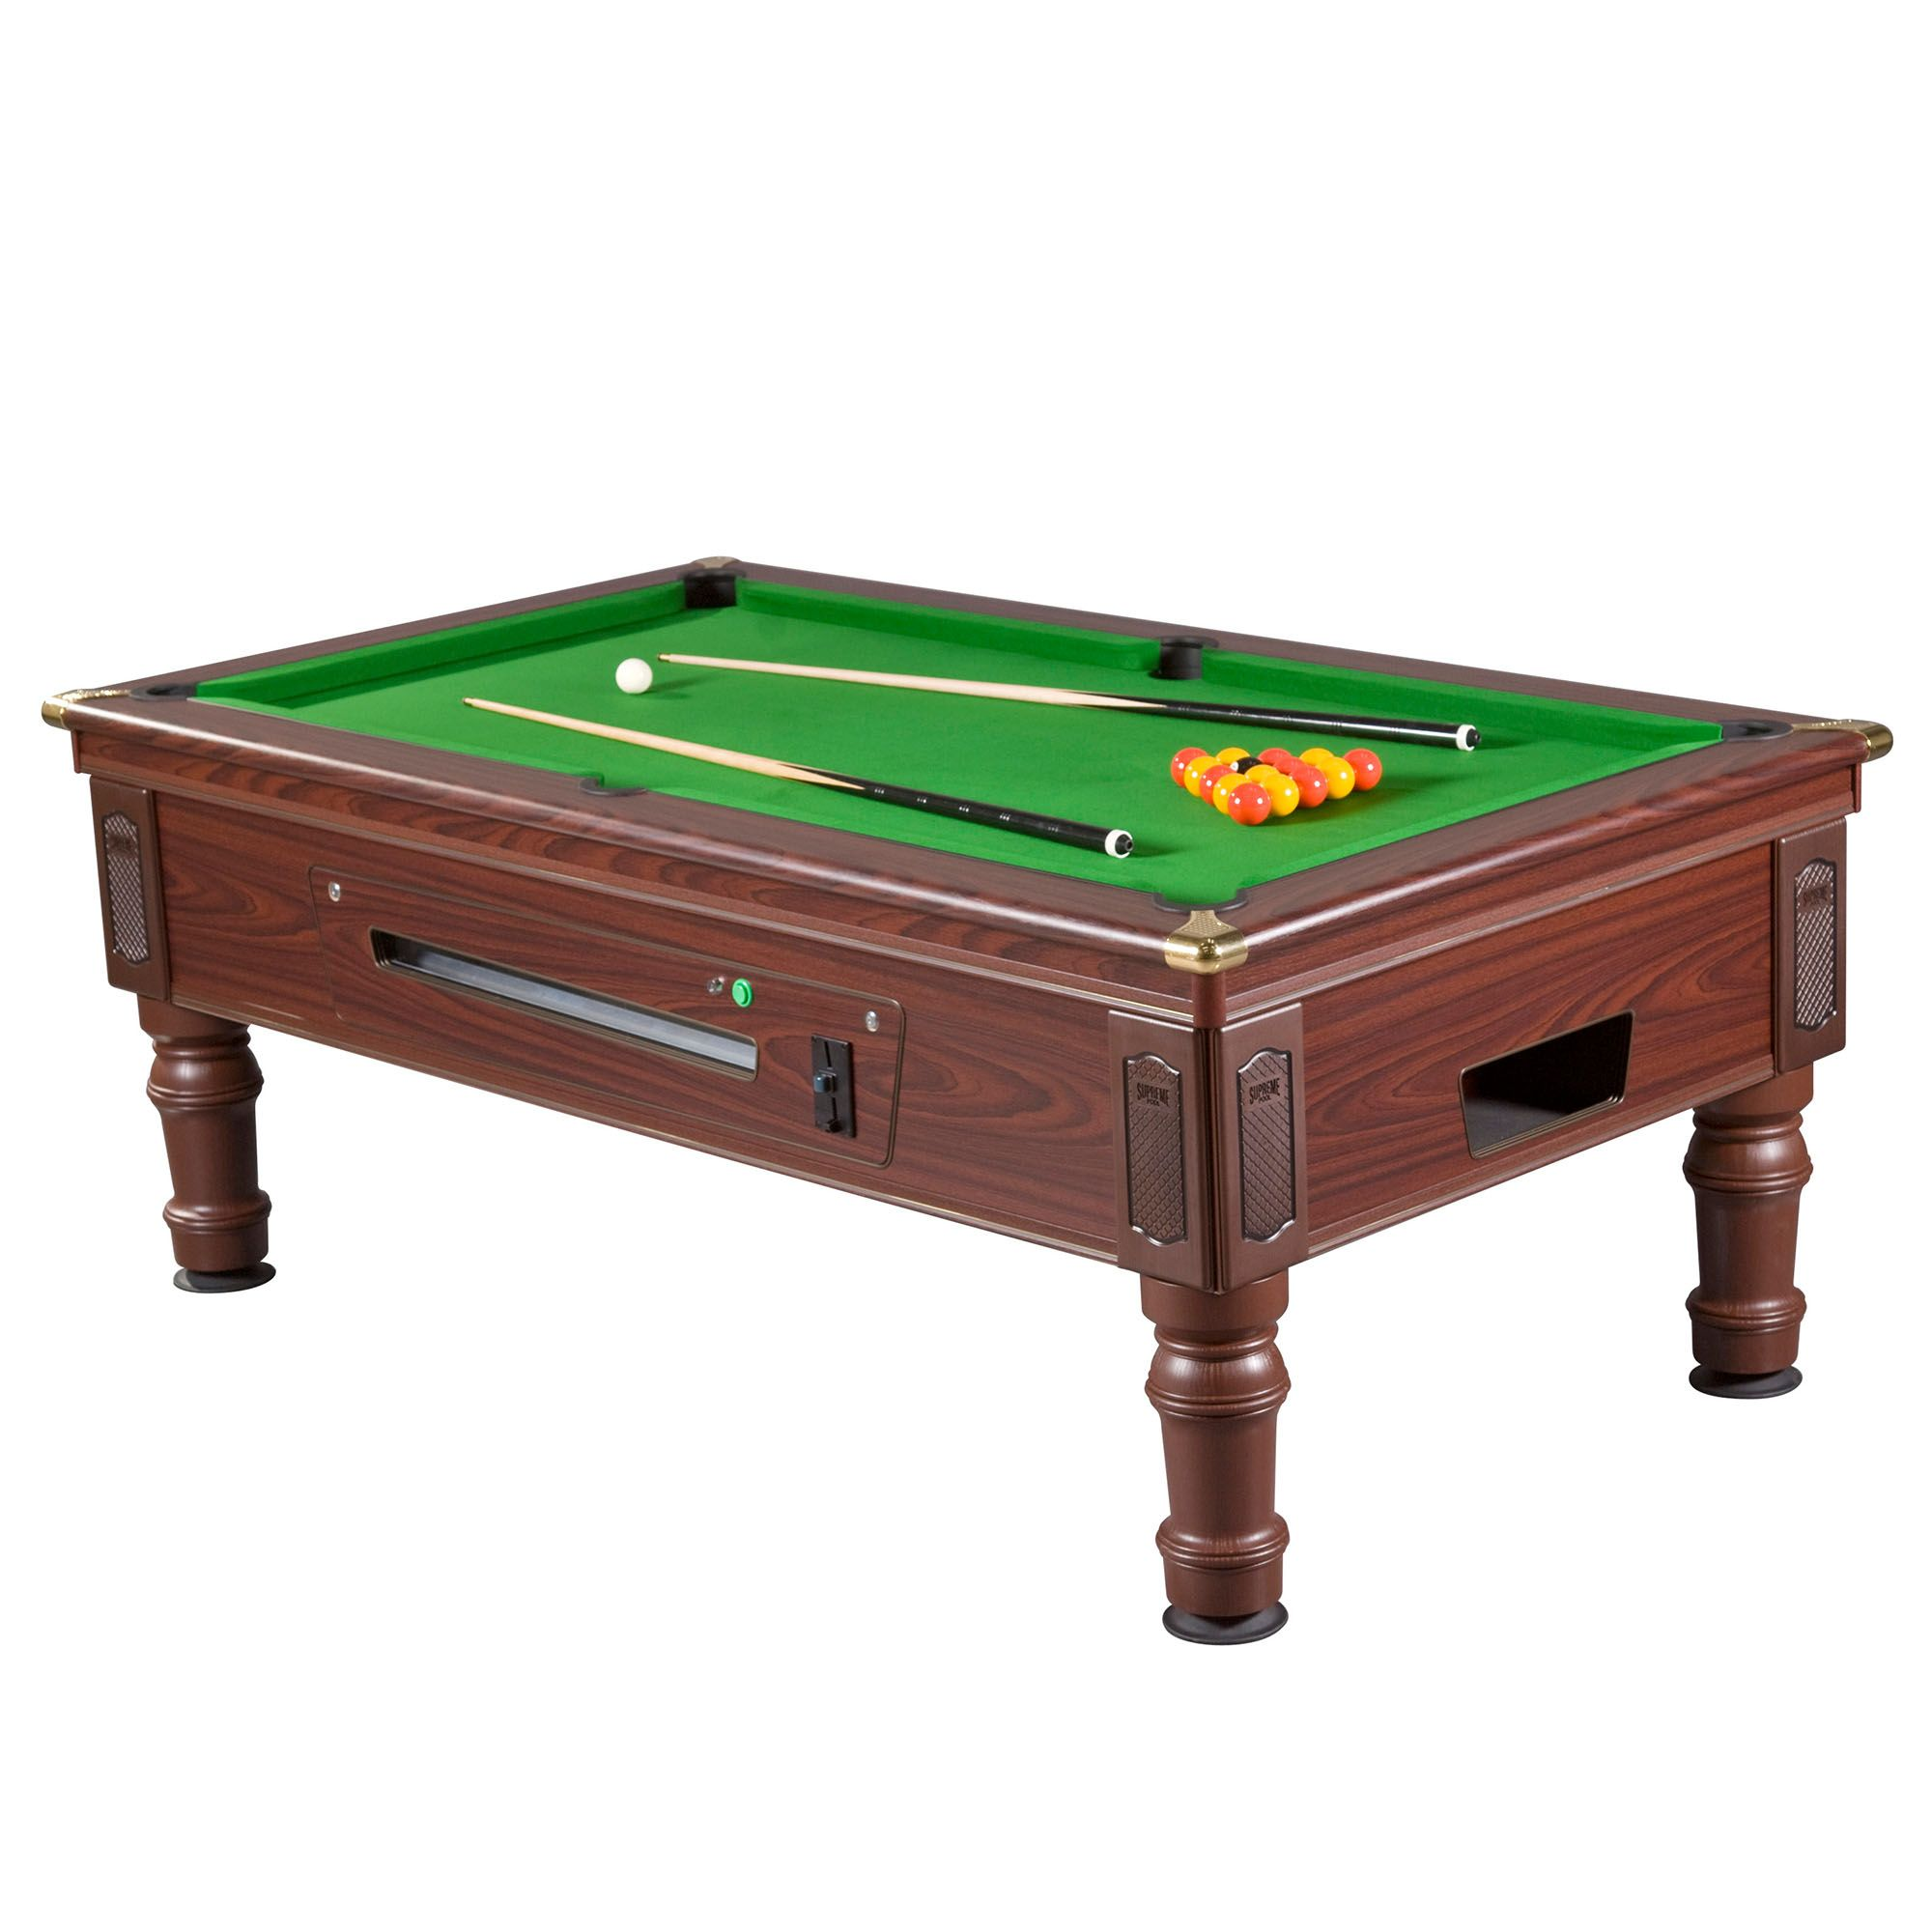 Mightymast 6ft prince slate bed english pool table for Table 6 foot